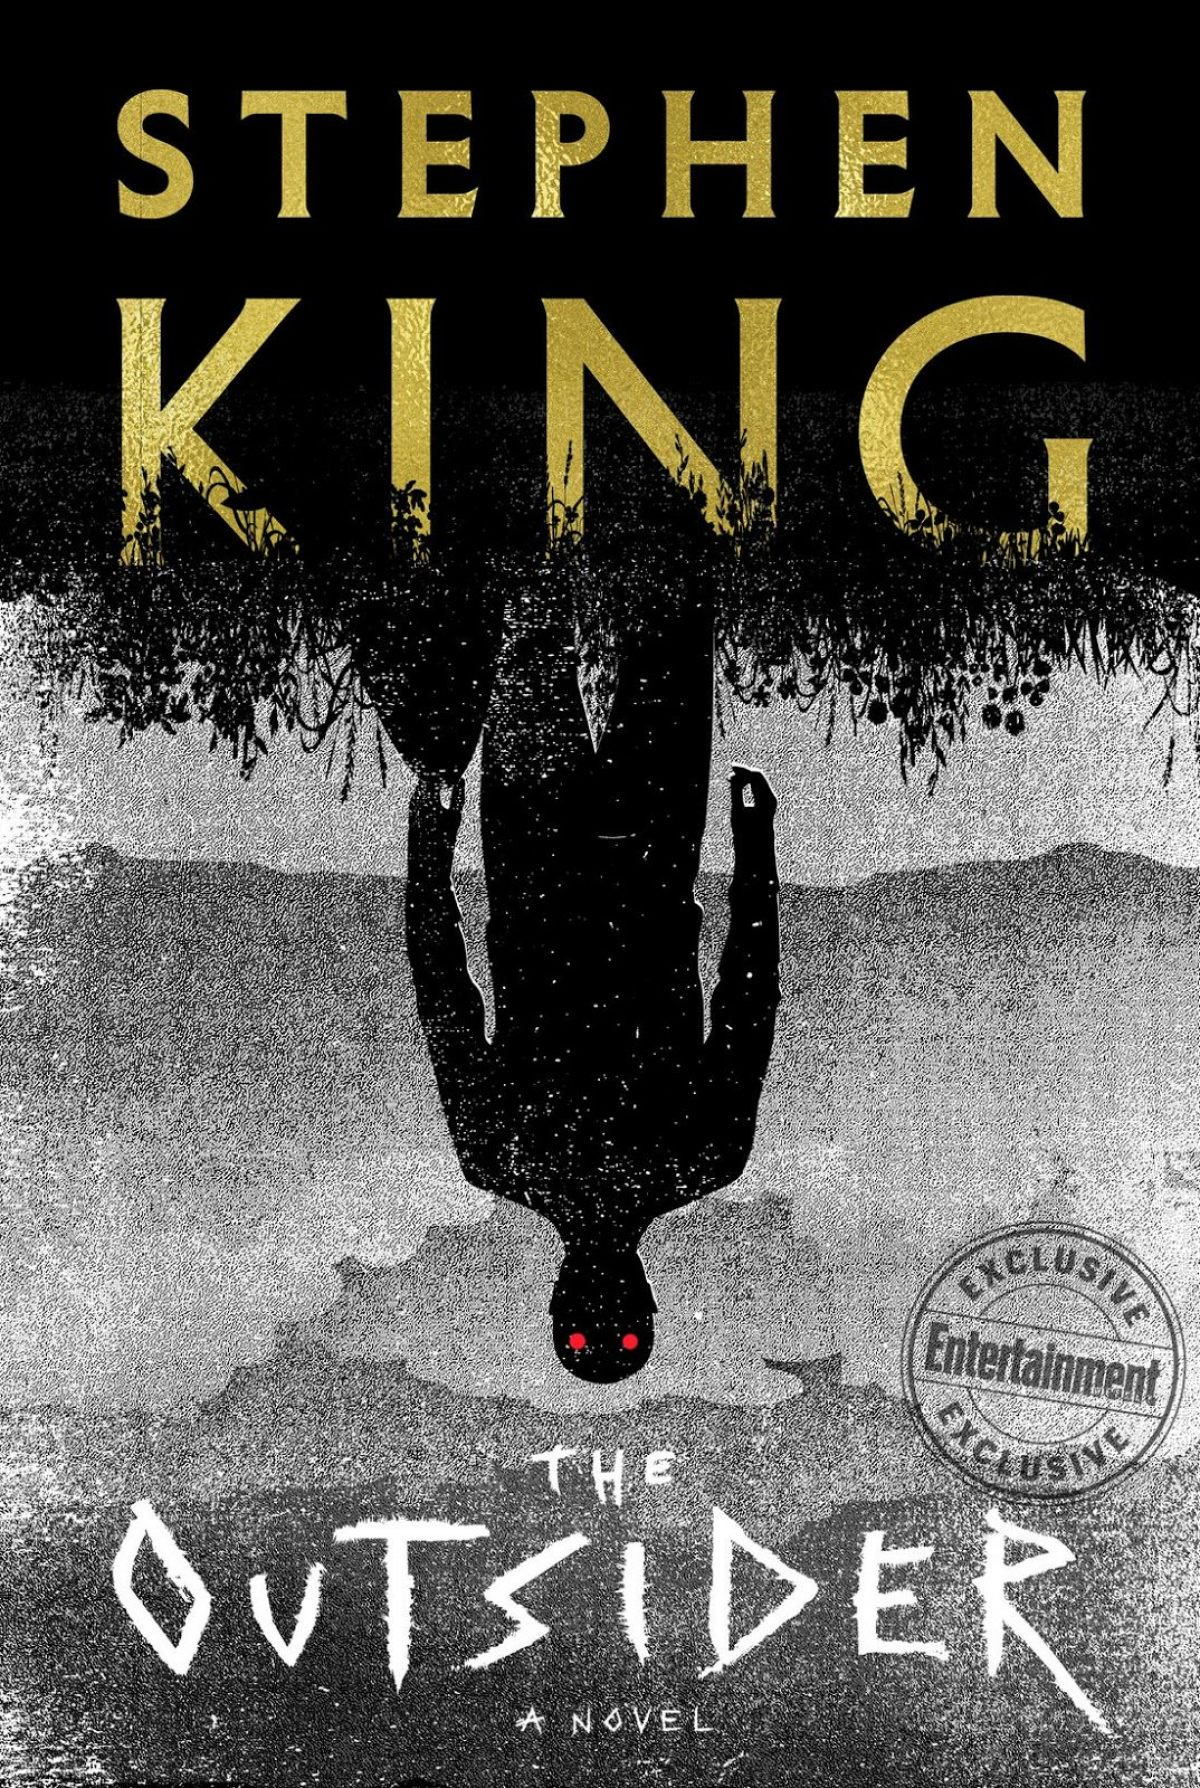 Book Review: The Outsider, by Stephen King